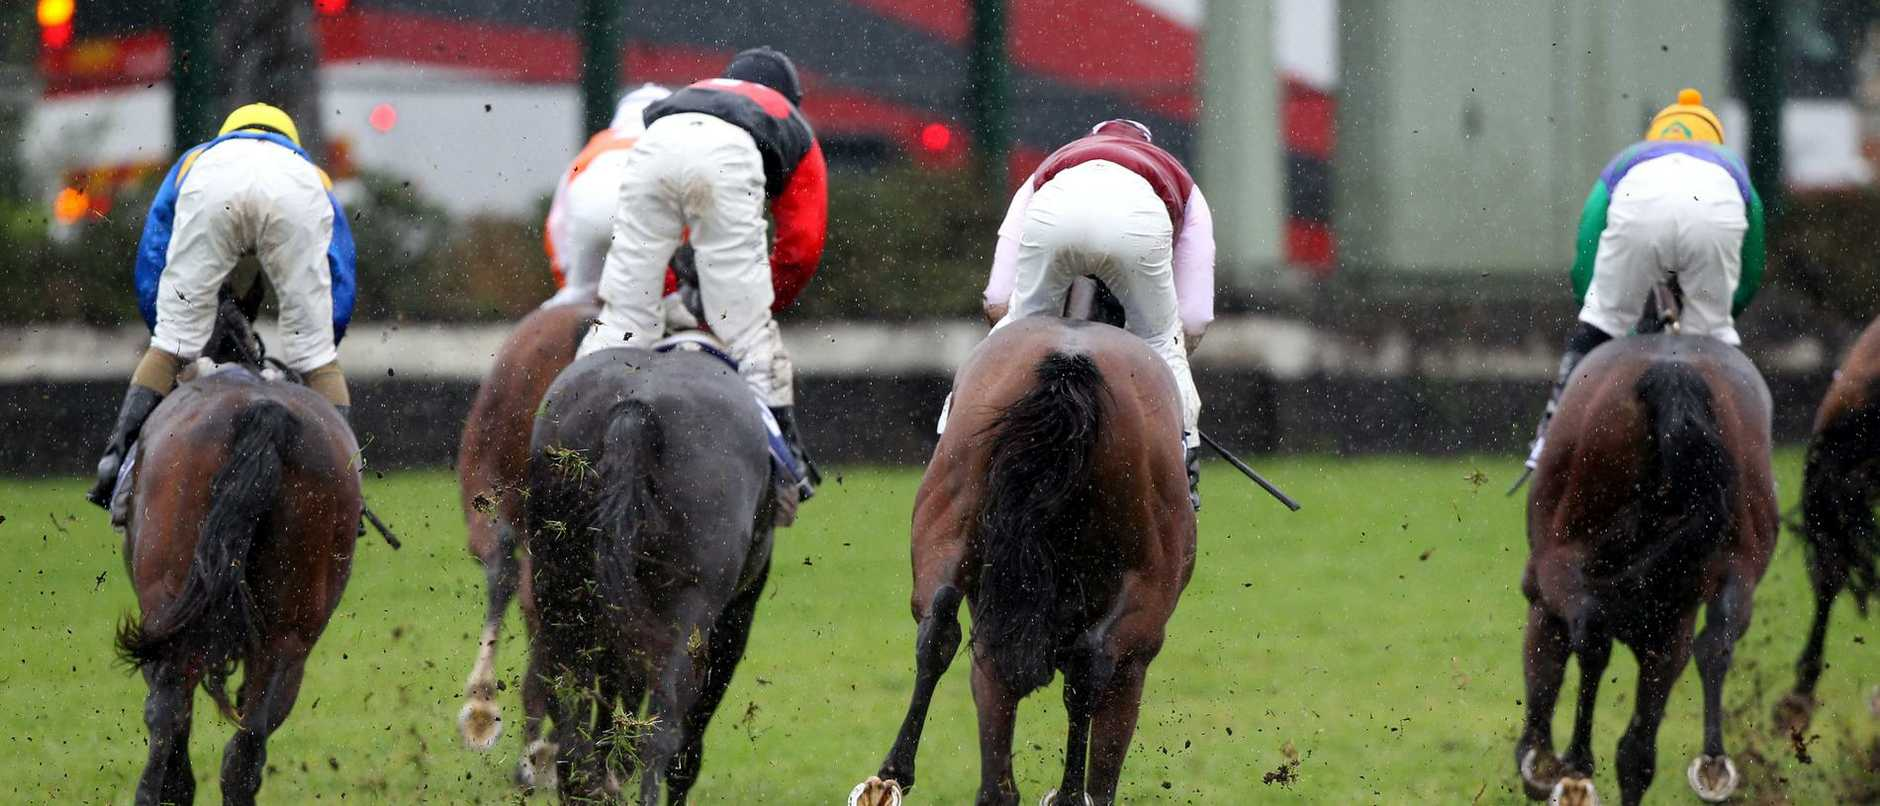 Horse Racing - Canterbury Races @ Canterbury Park .Race 1 , Horses kick up mud in the wet conditions .Pic;Gregg Porteous